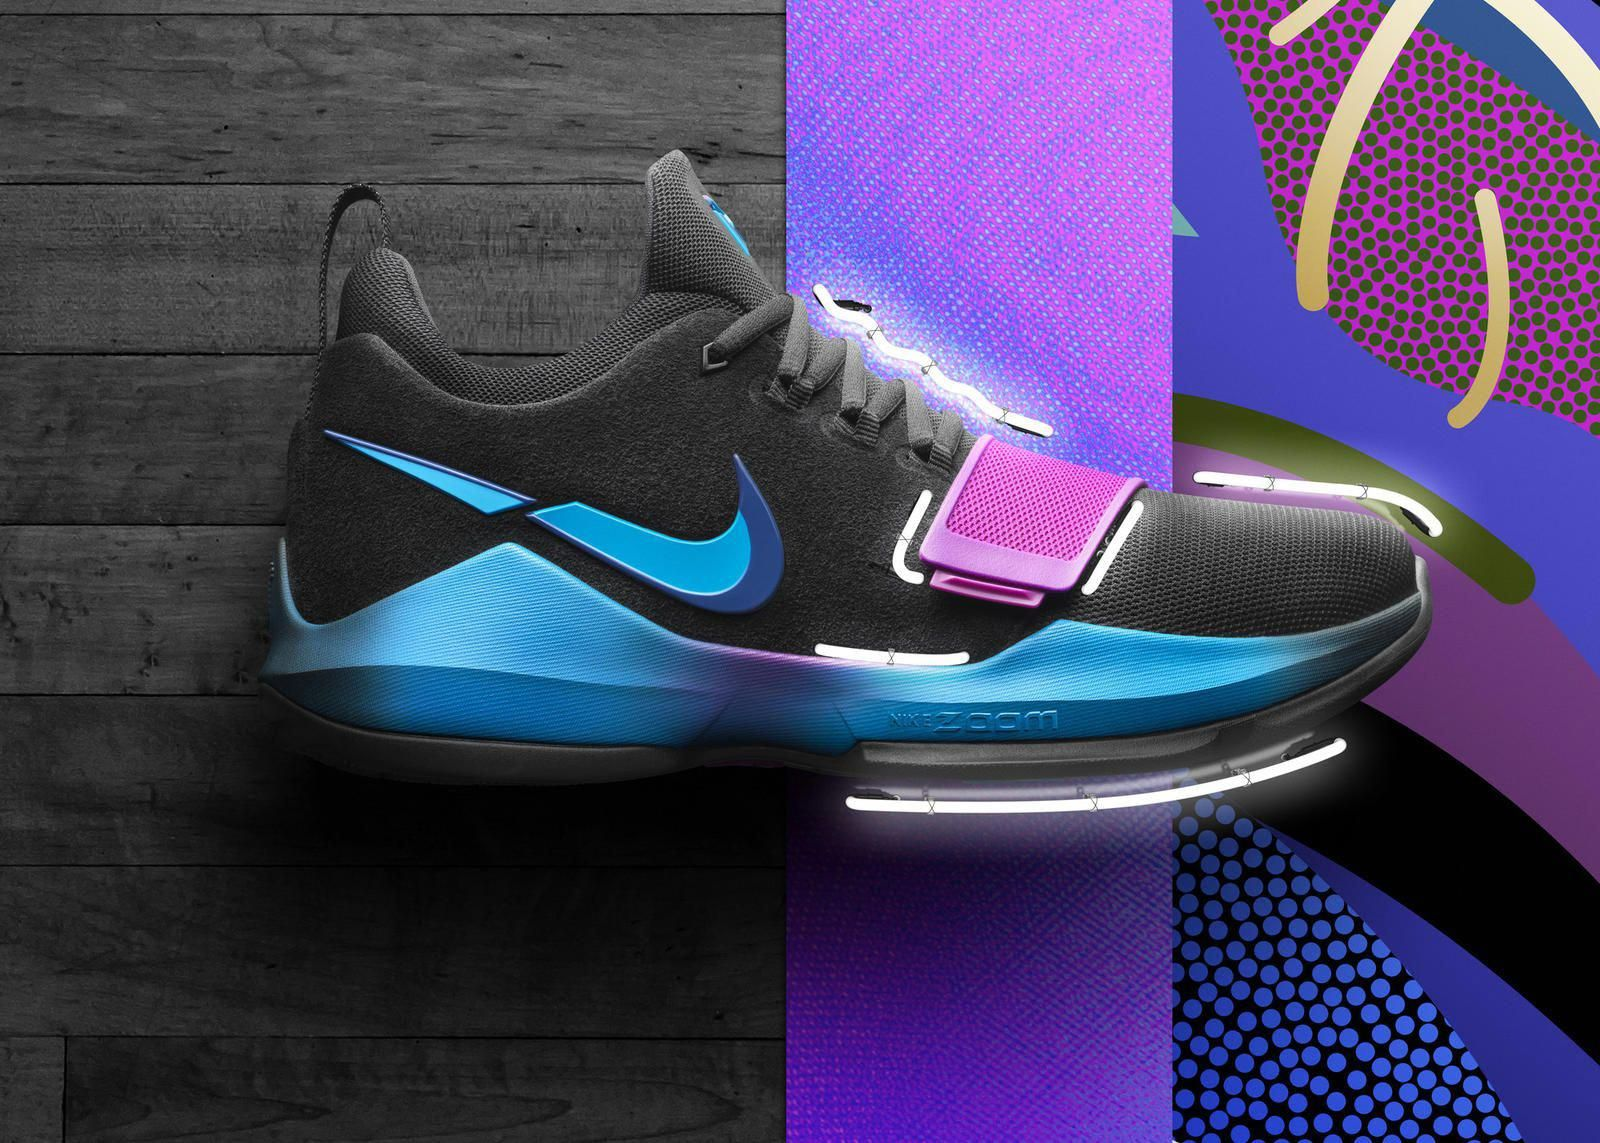 79caa96b8c5 Nike News - Nike Basketball Flip the Switch Collection  bestbasketballshoes